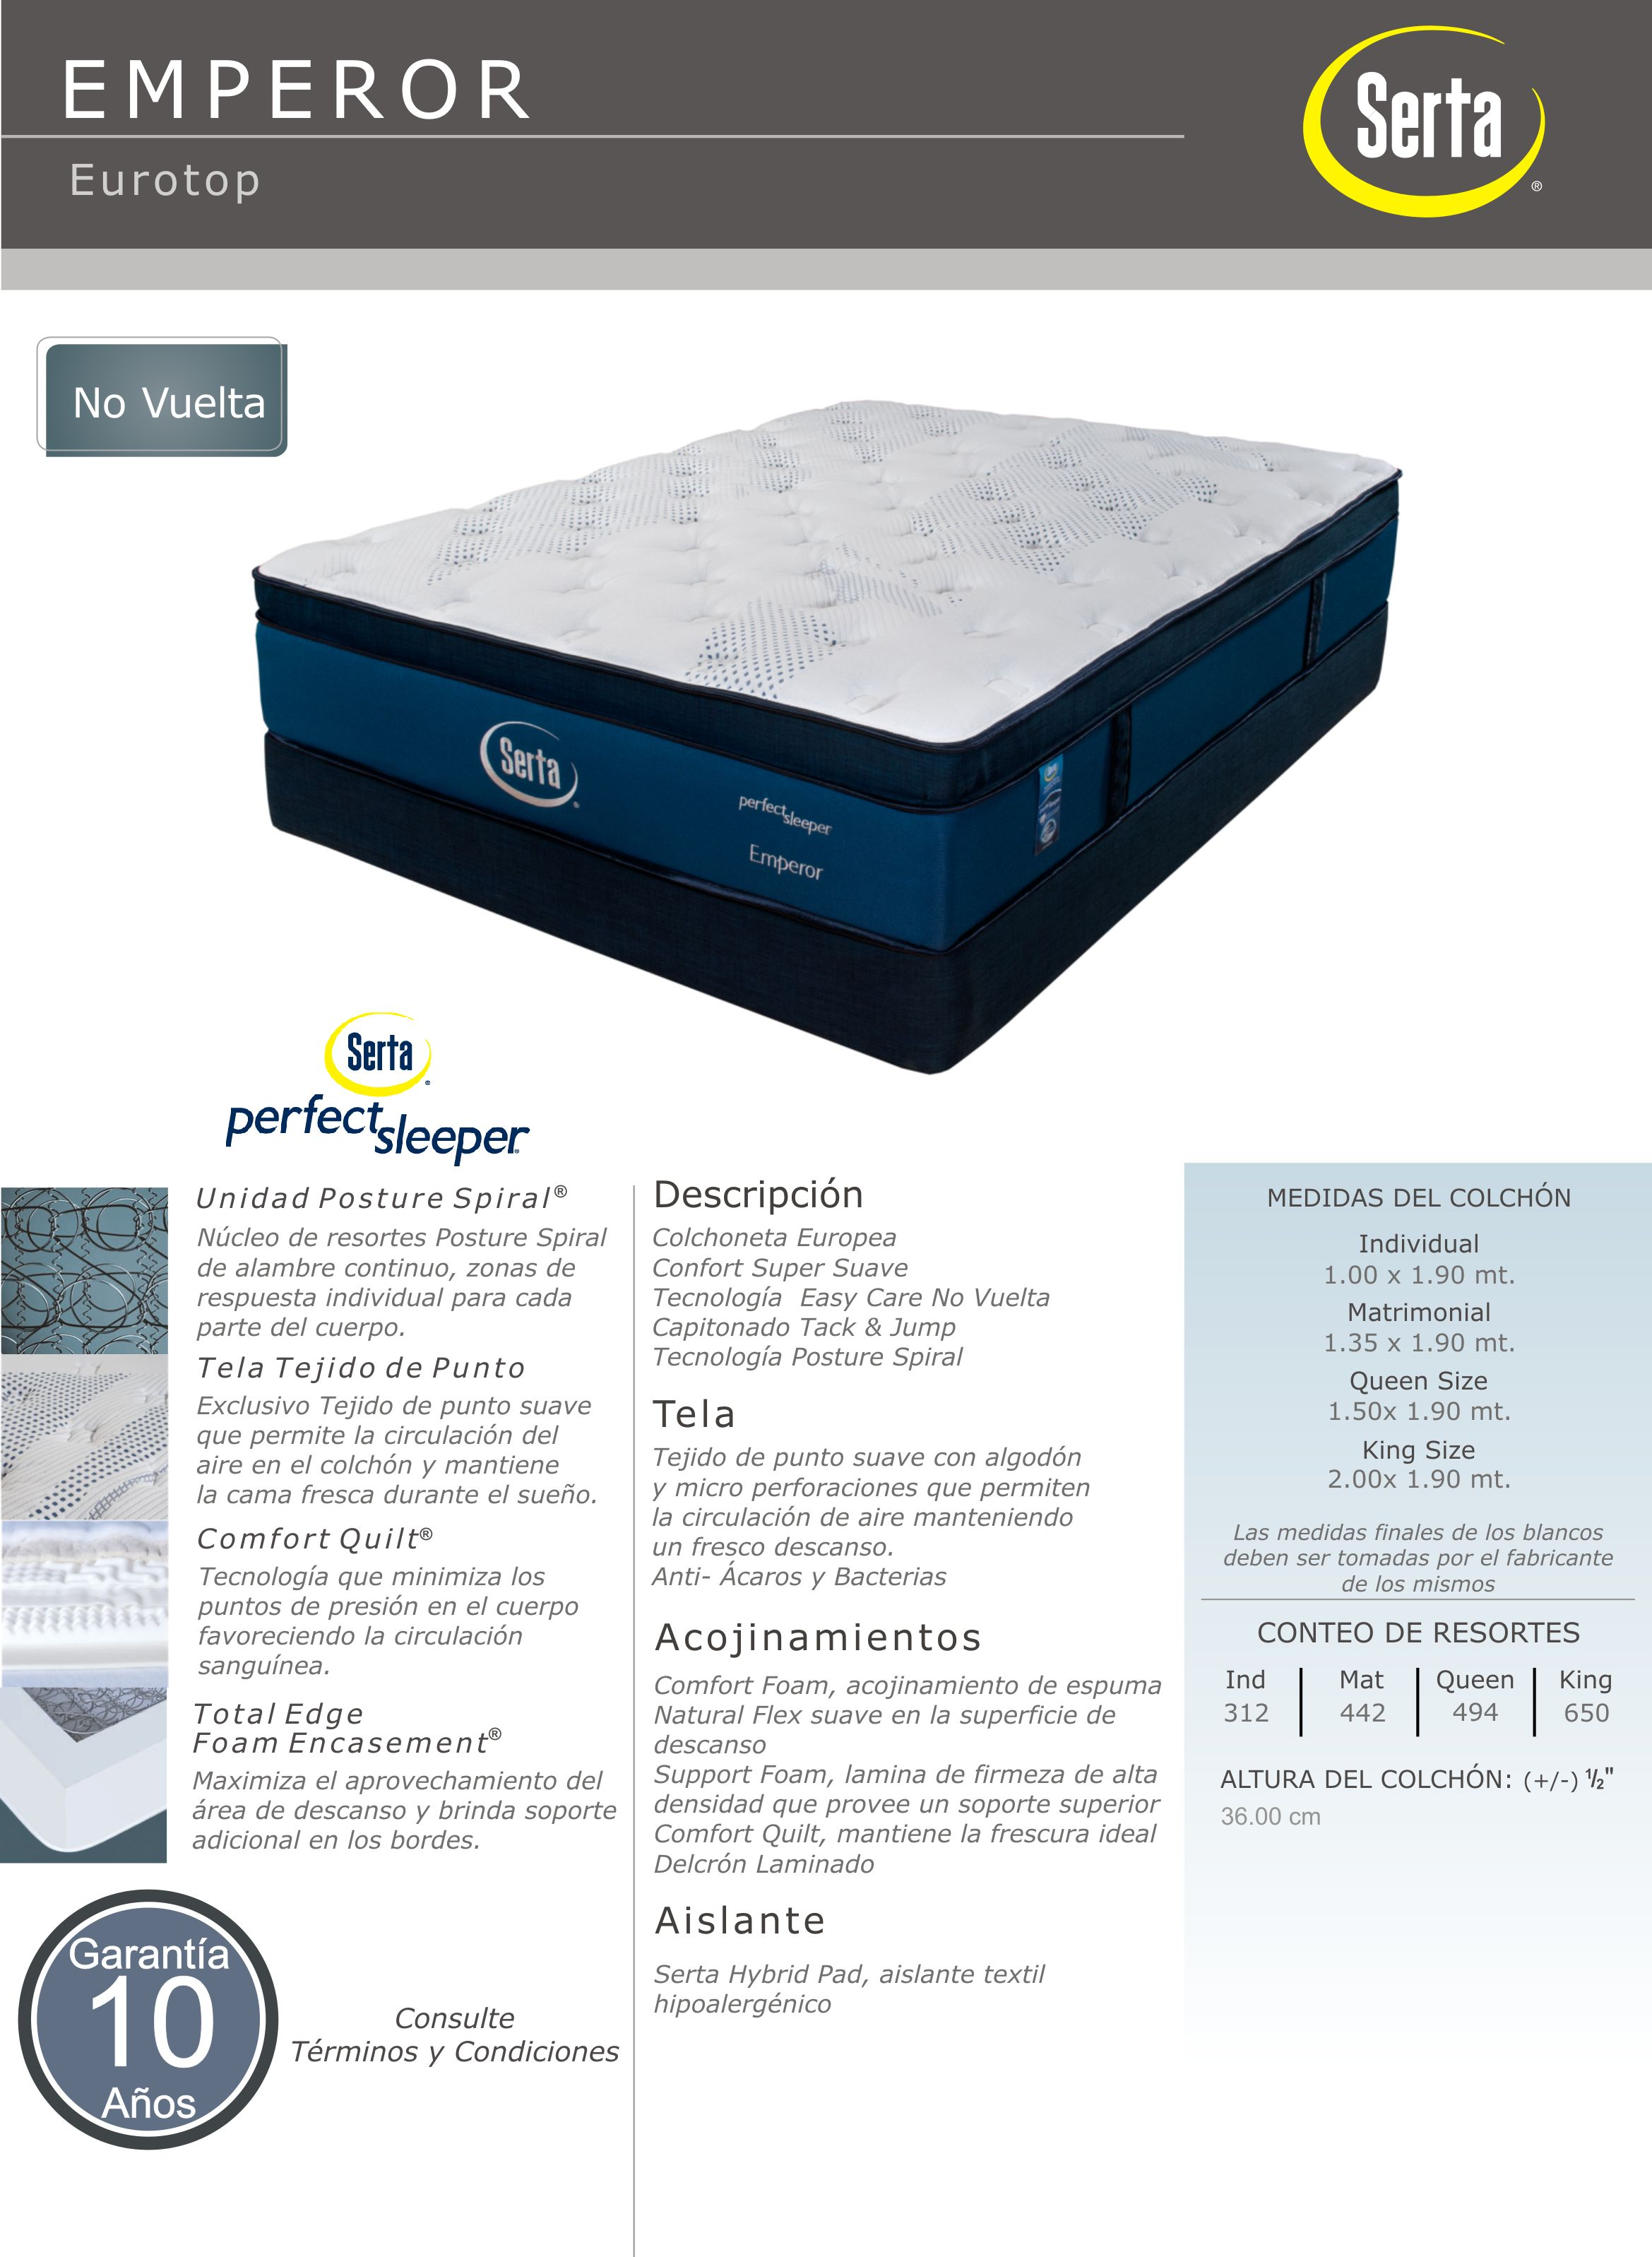 size garden cromwell mattresses spring queen set serta shipping home free and box firm overstock today mattress product